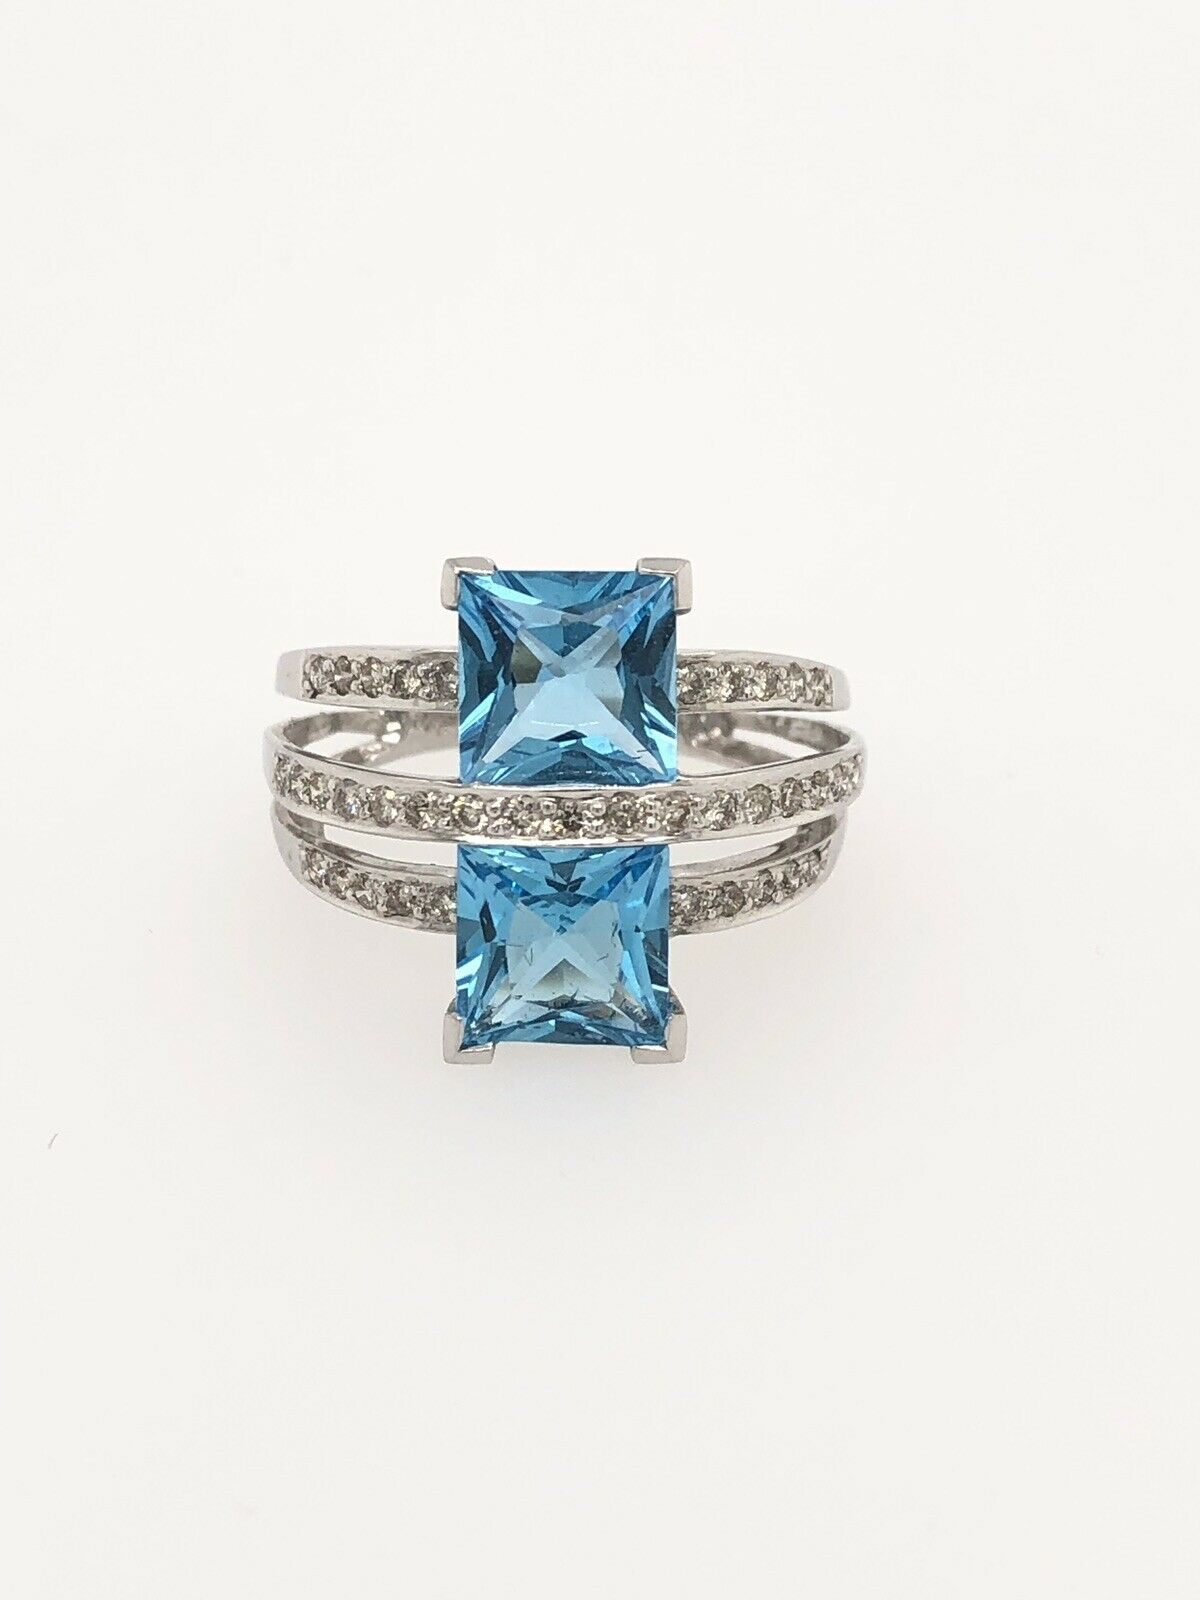 bluee Topaz And Diamond 14k White gold 3 Layer Ring - Item RM0